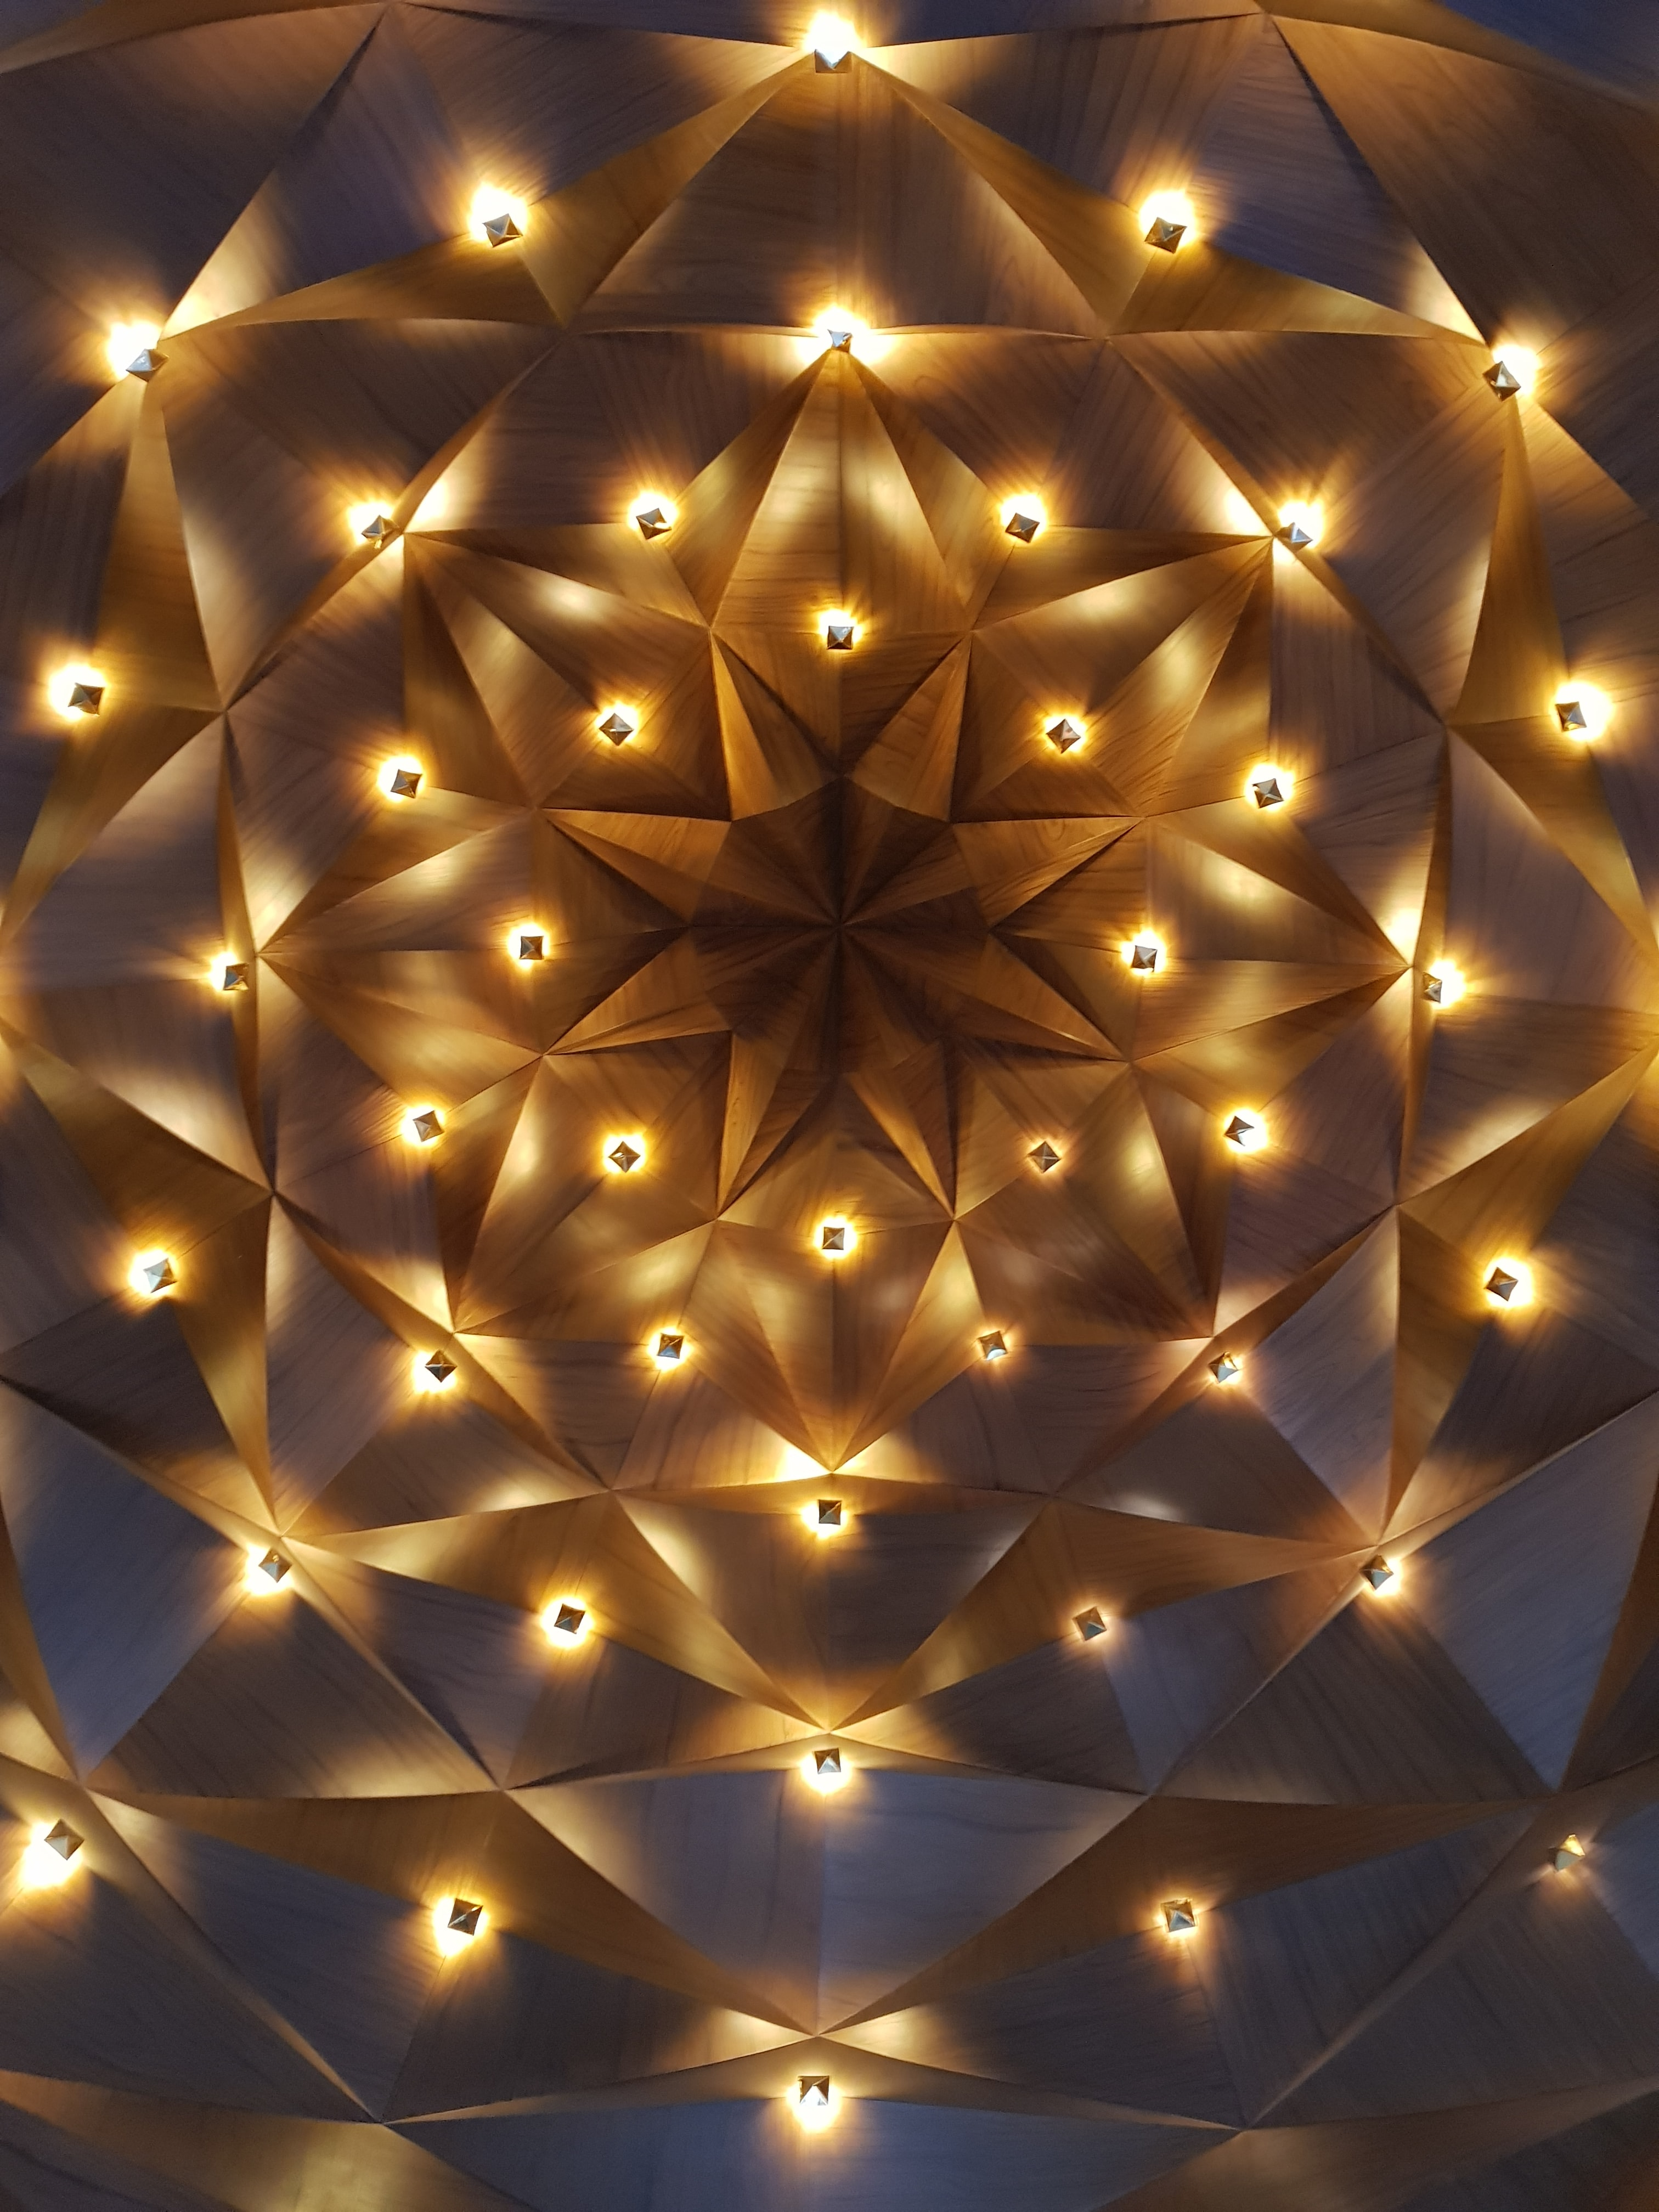 Star Pattern Ceiling And Architecture Hd Photo By Nibras